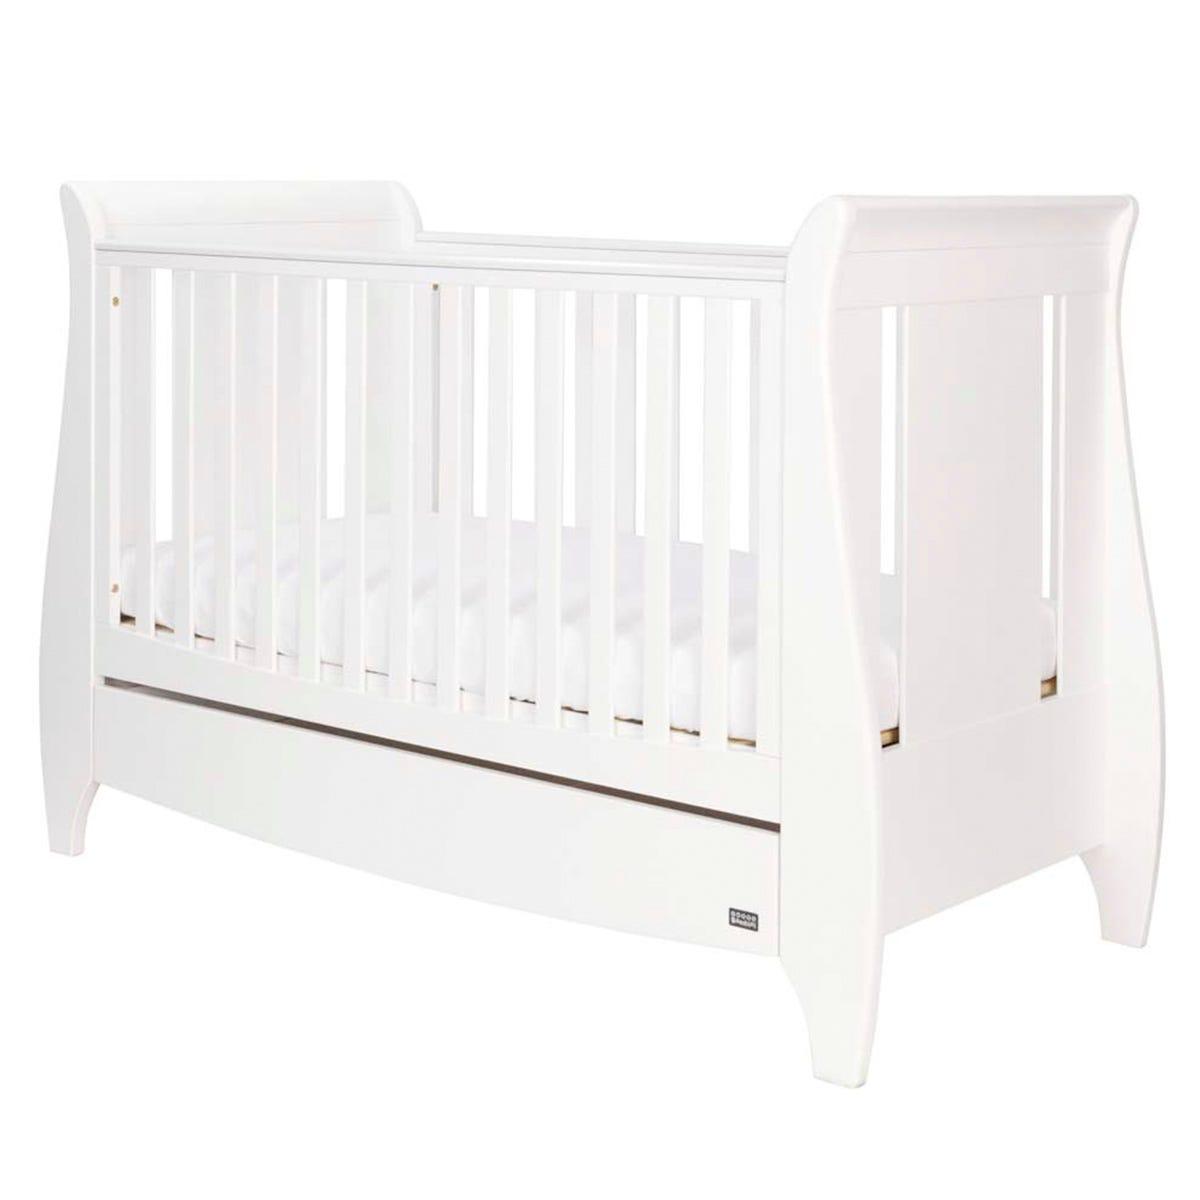 Tutti Bambini Lucas Sleigh 3-in-1 Cot Bed with Drawer - White